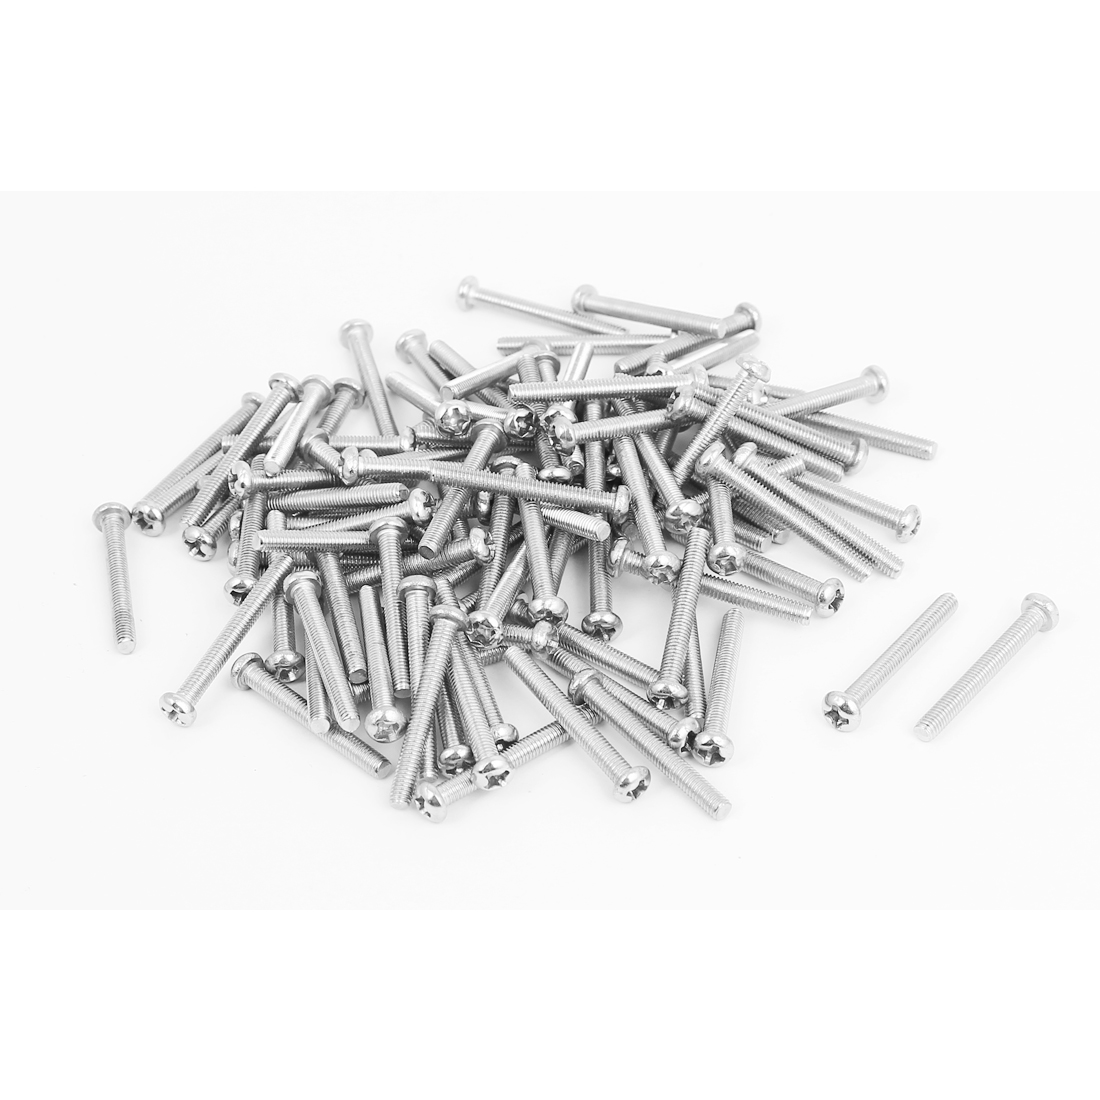 M3x25mm Stainless Steel Phillips Round Pan Head Machine Screws 100pcs